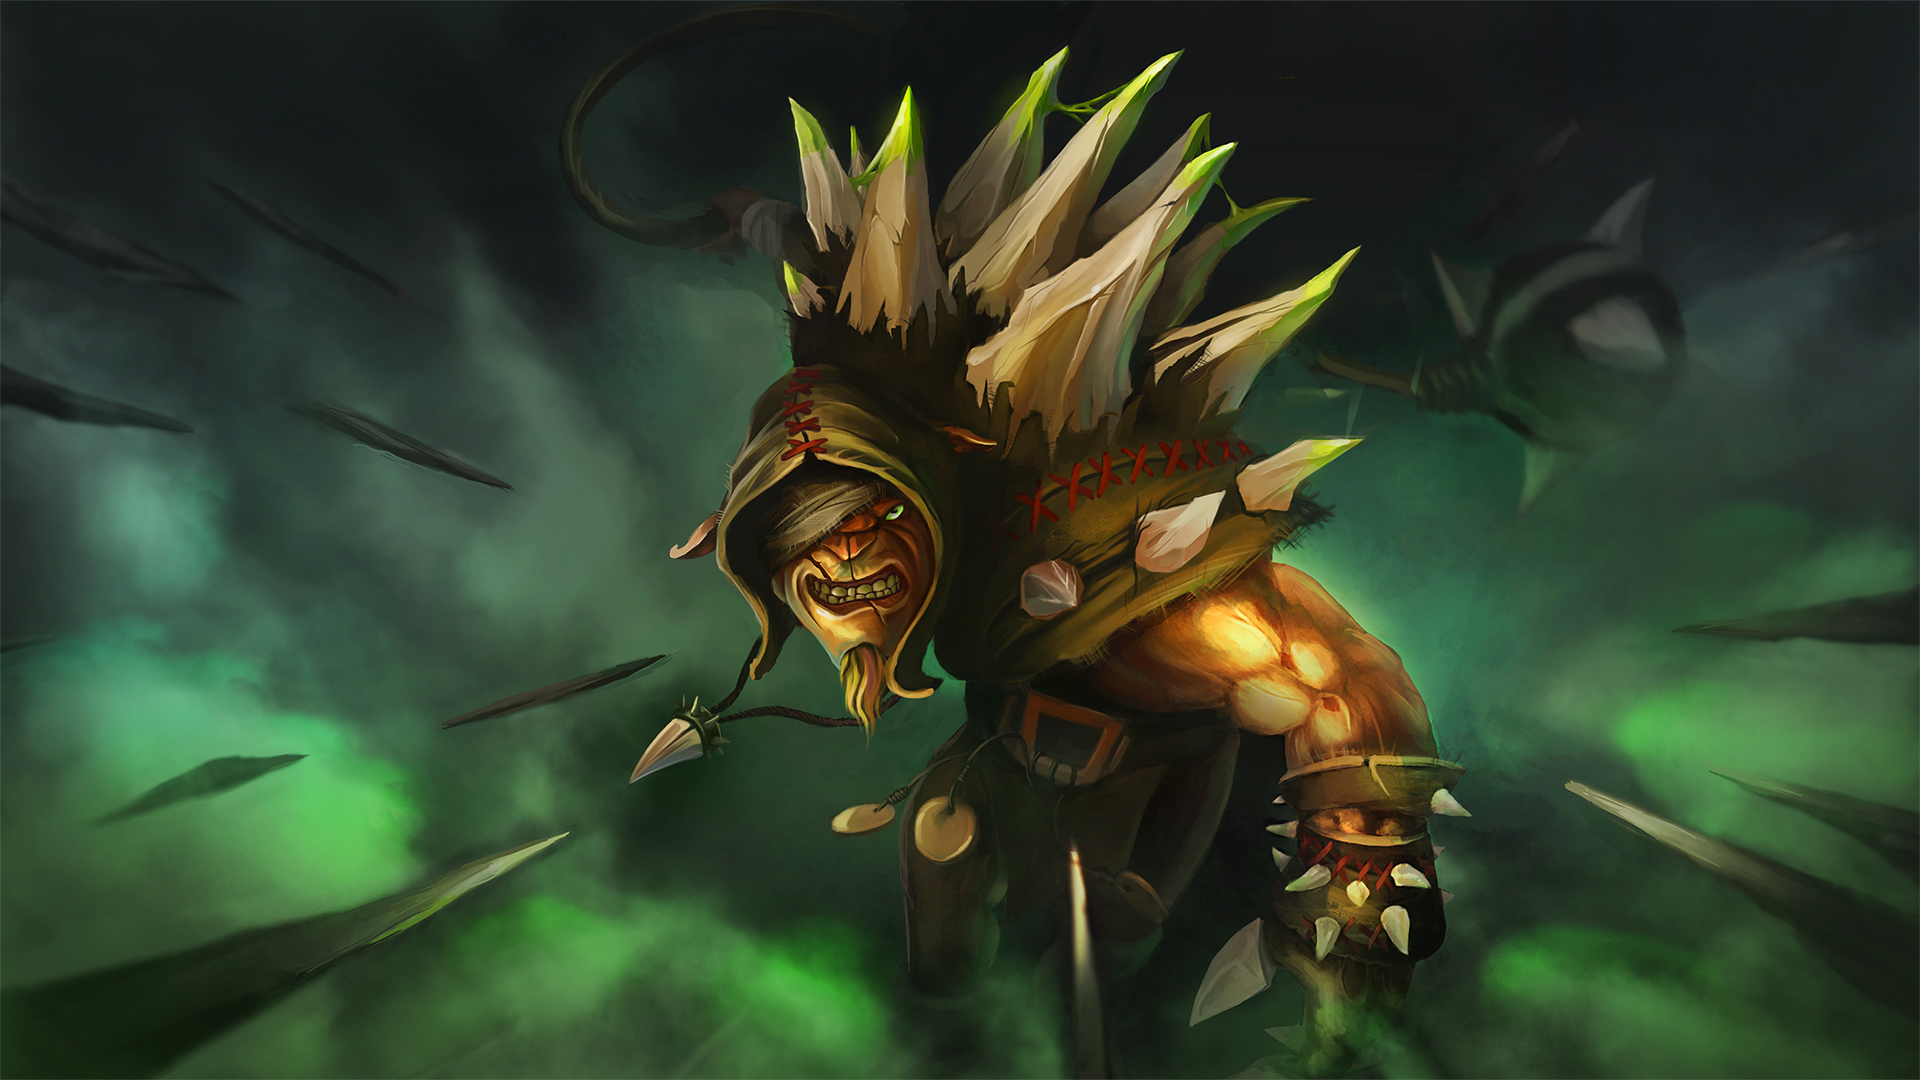 The Alchemist Quotes Wallpaper Dota 2 Wallpapers